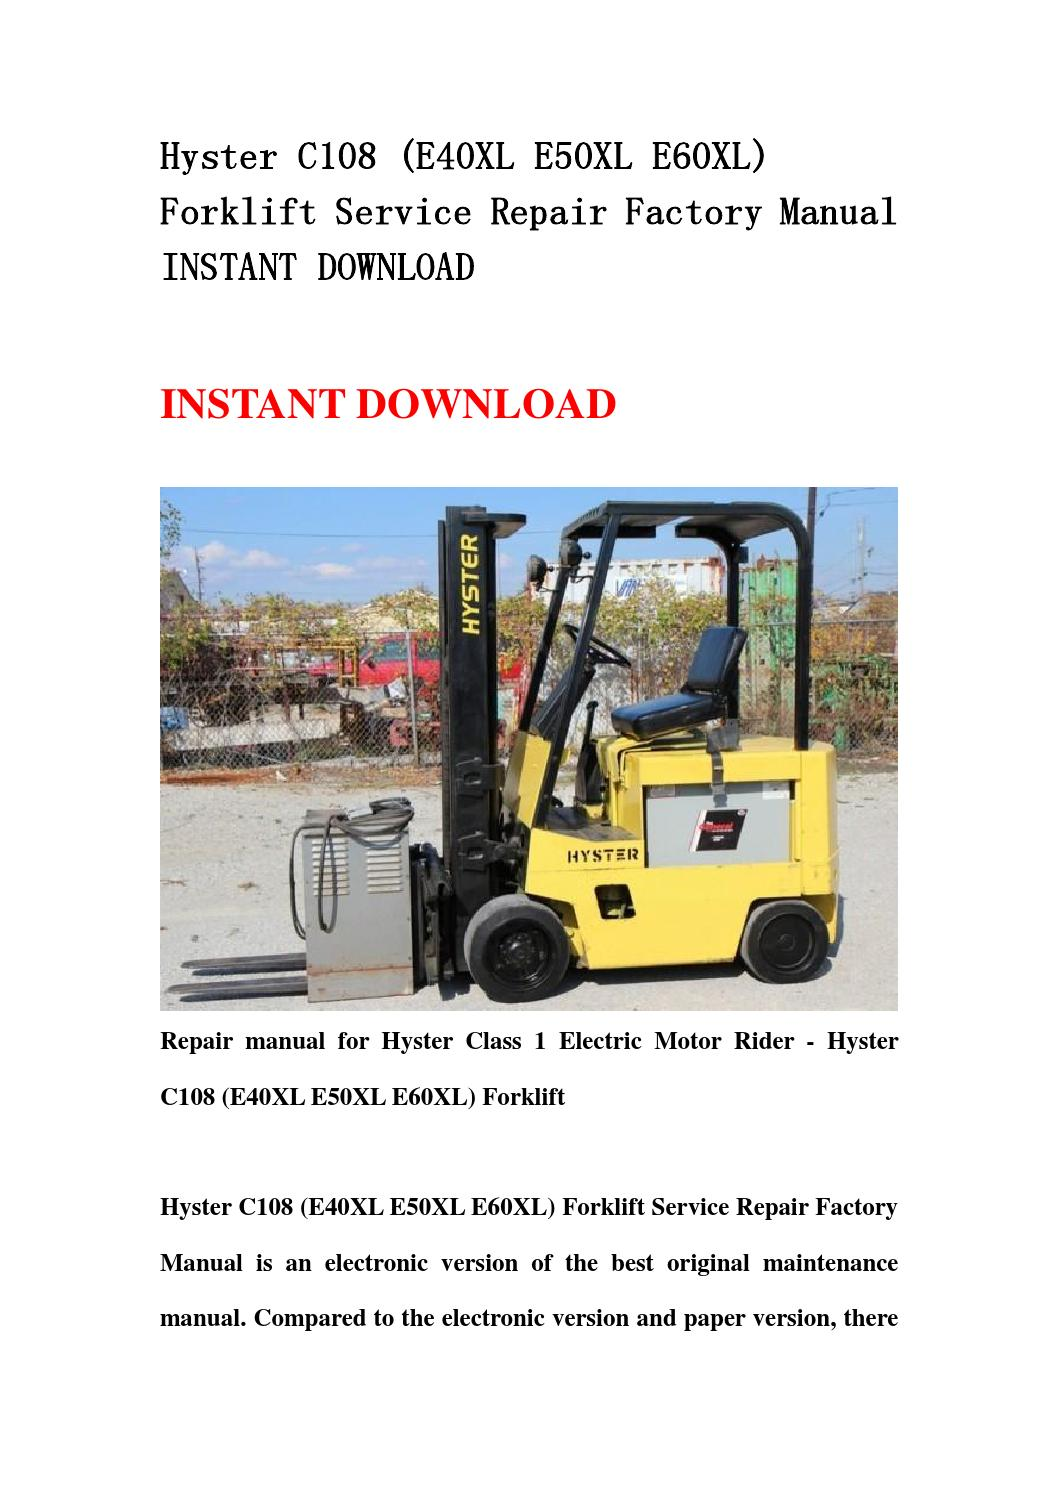 Hyster E50xl forklift Manual